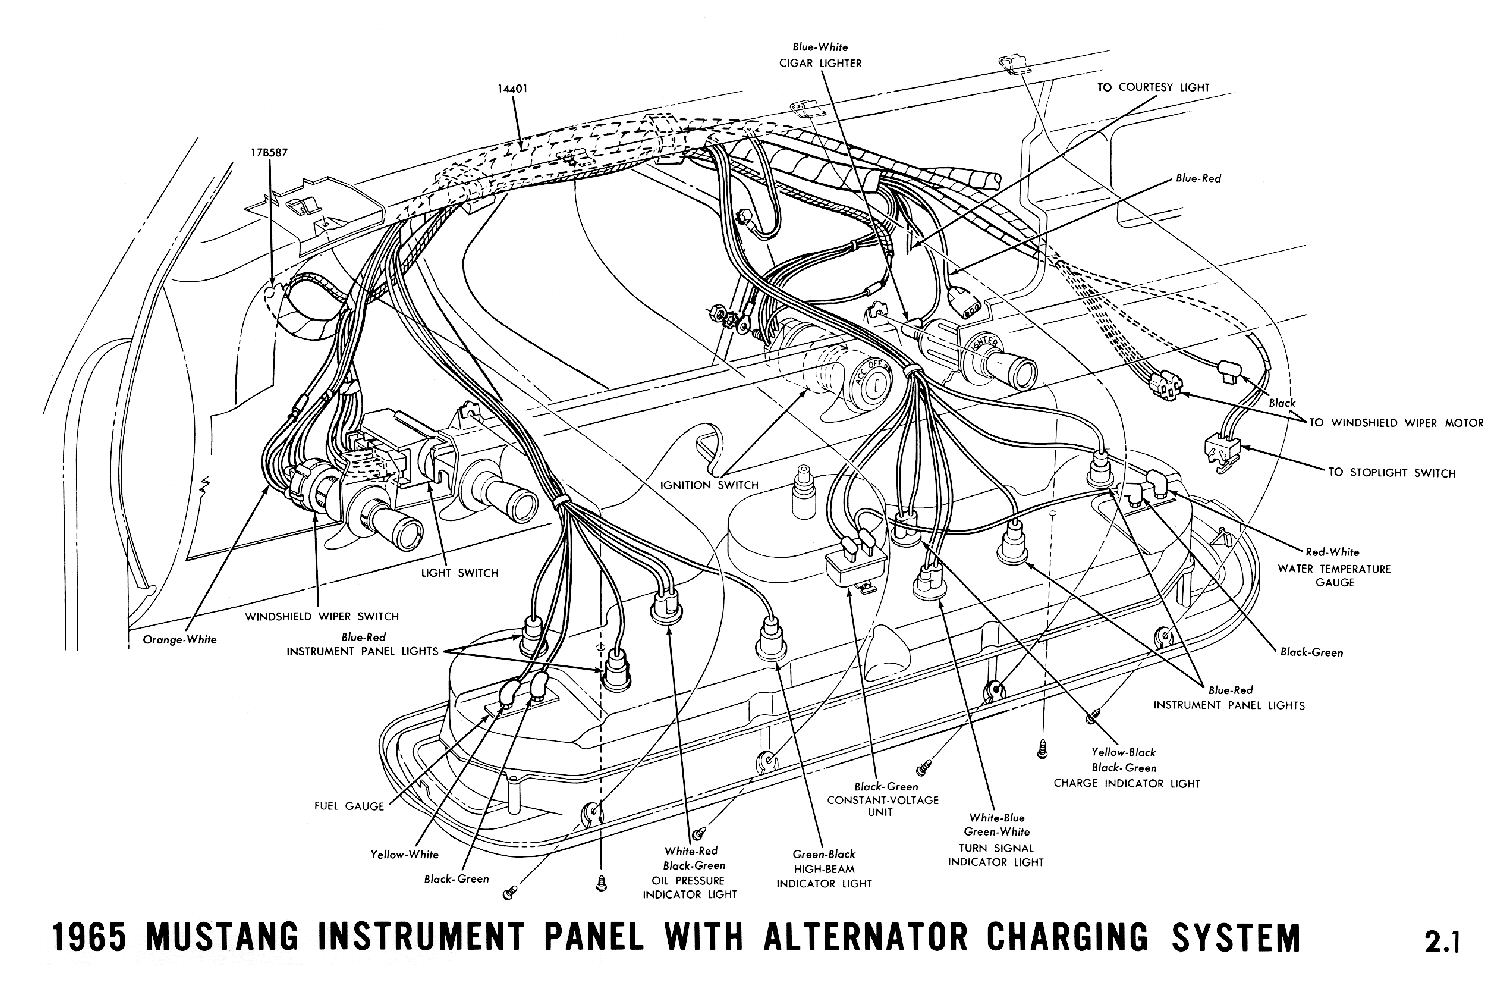 1965a 1965 mustang wiring diagrams average joe restoration 1969 mustang under dash wire harness at virtualis.co